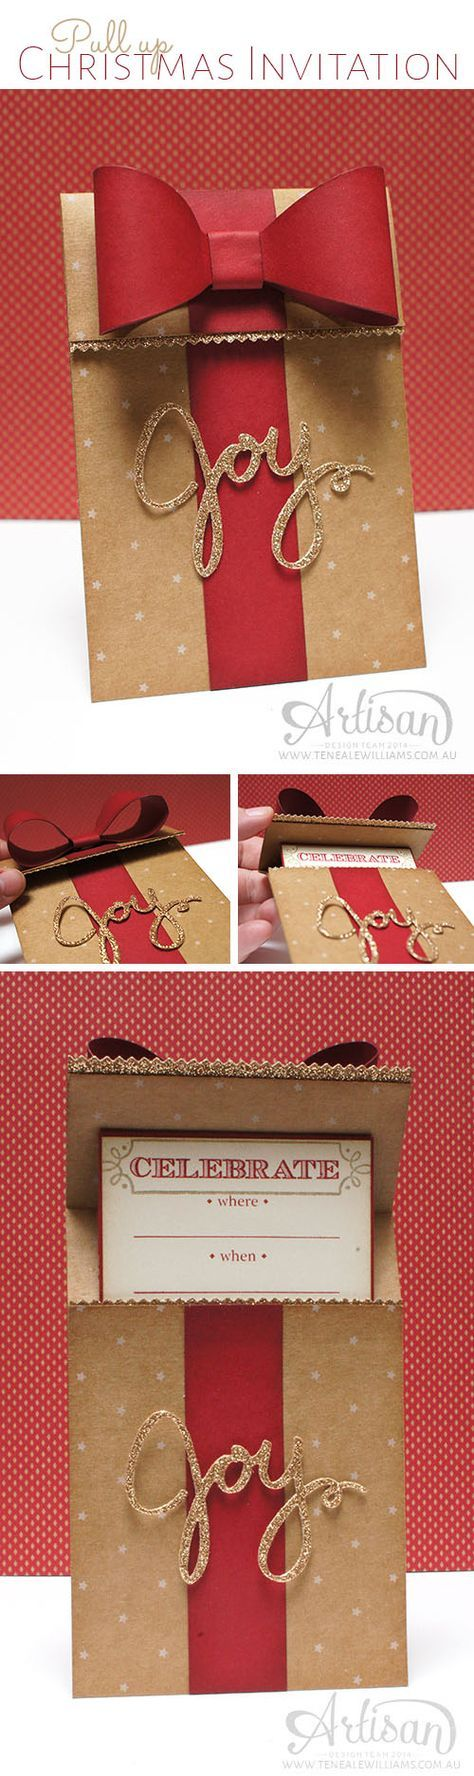 By Teneale Williams | Stampin'Up! Artisan Blog Hop | Christmas Invitation ... red paper bow on a kraft base ... luv the layering of JOY to make it thick and stand out ... wonderful card!